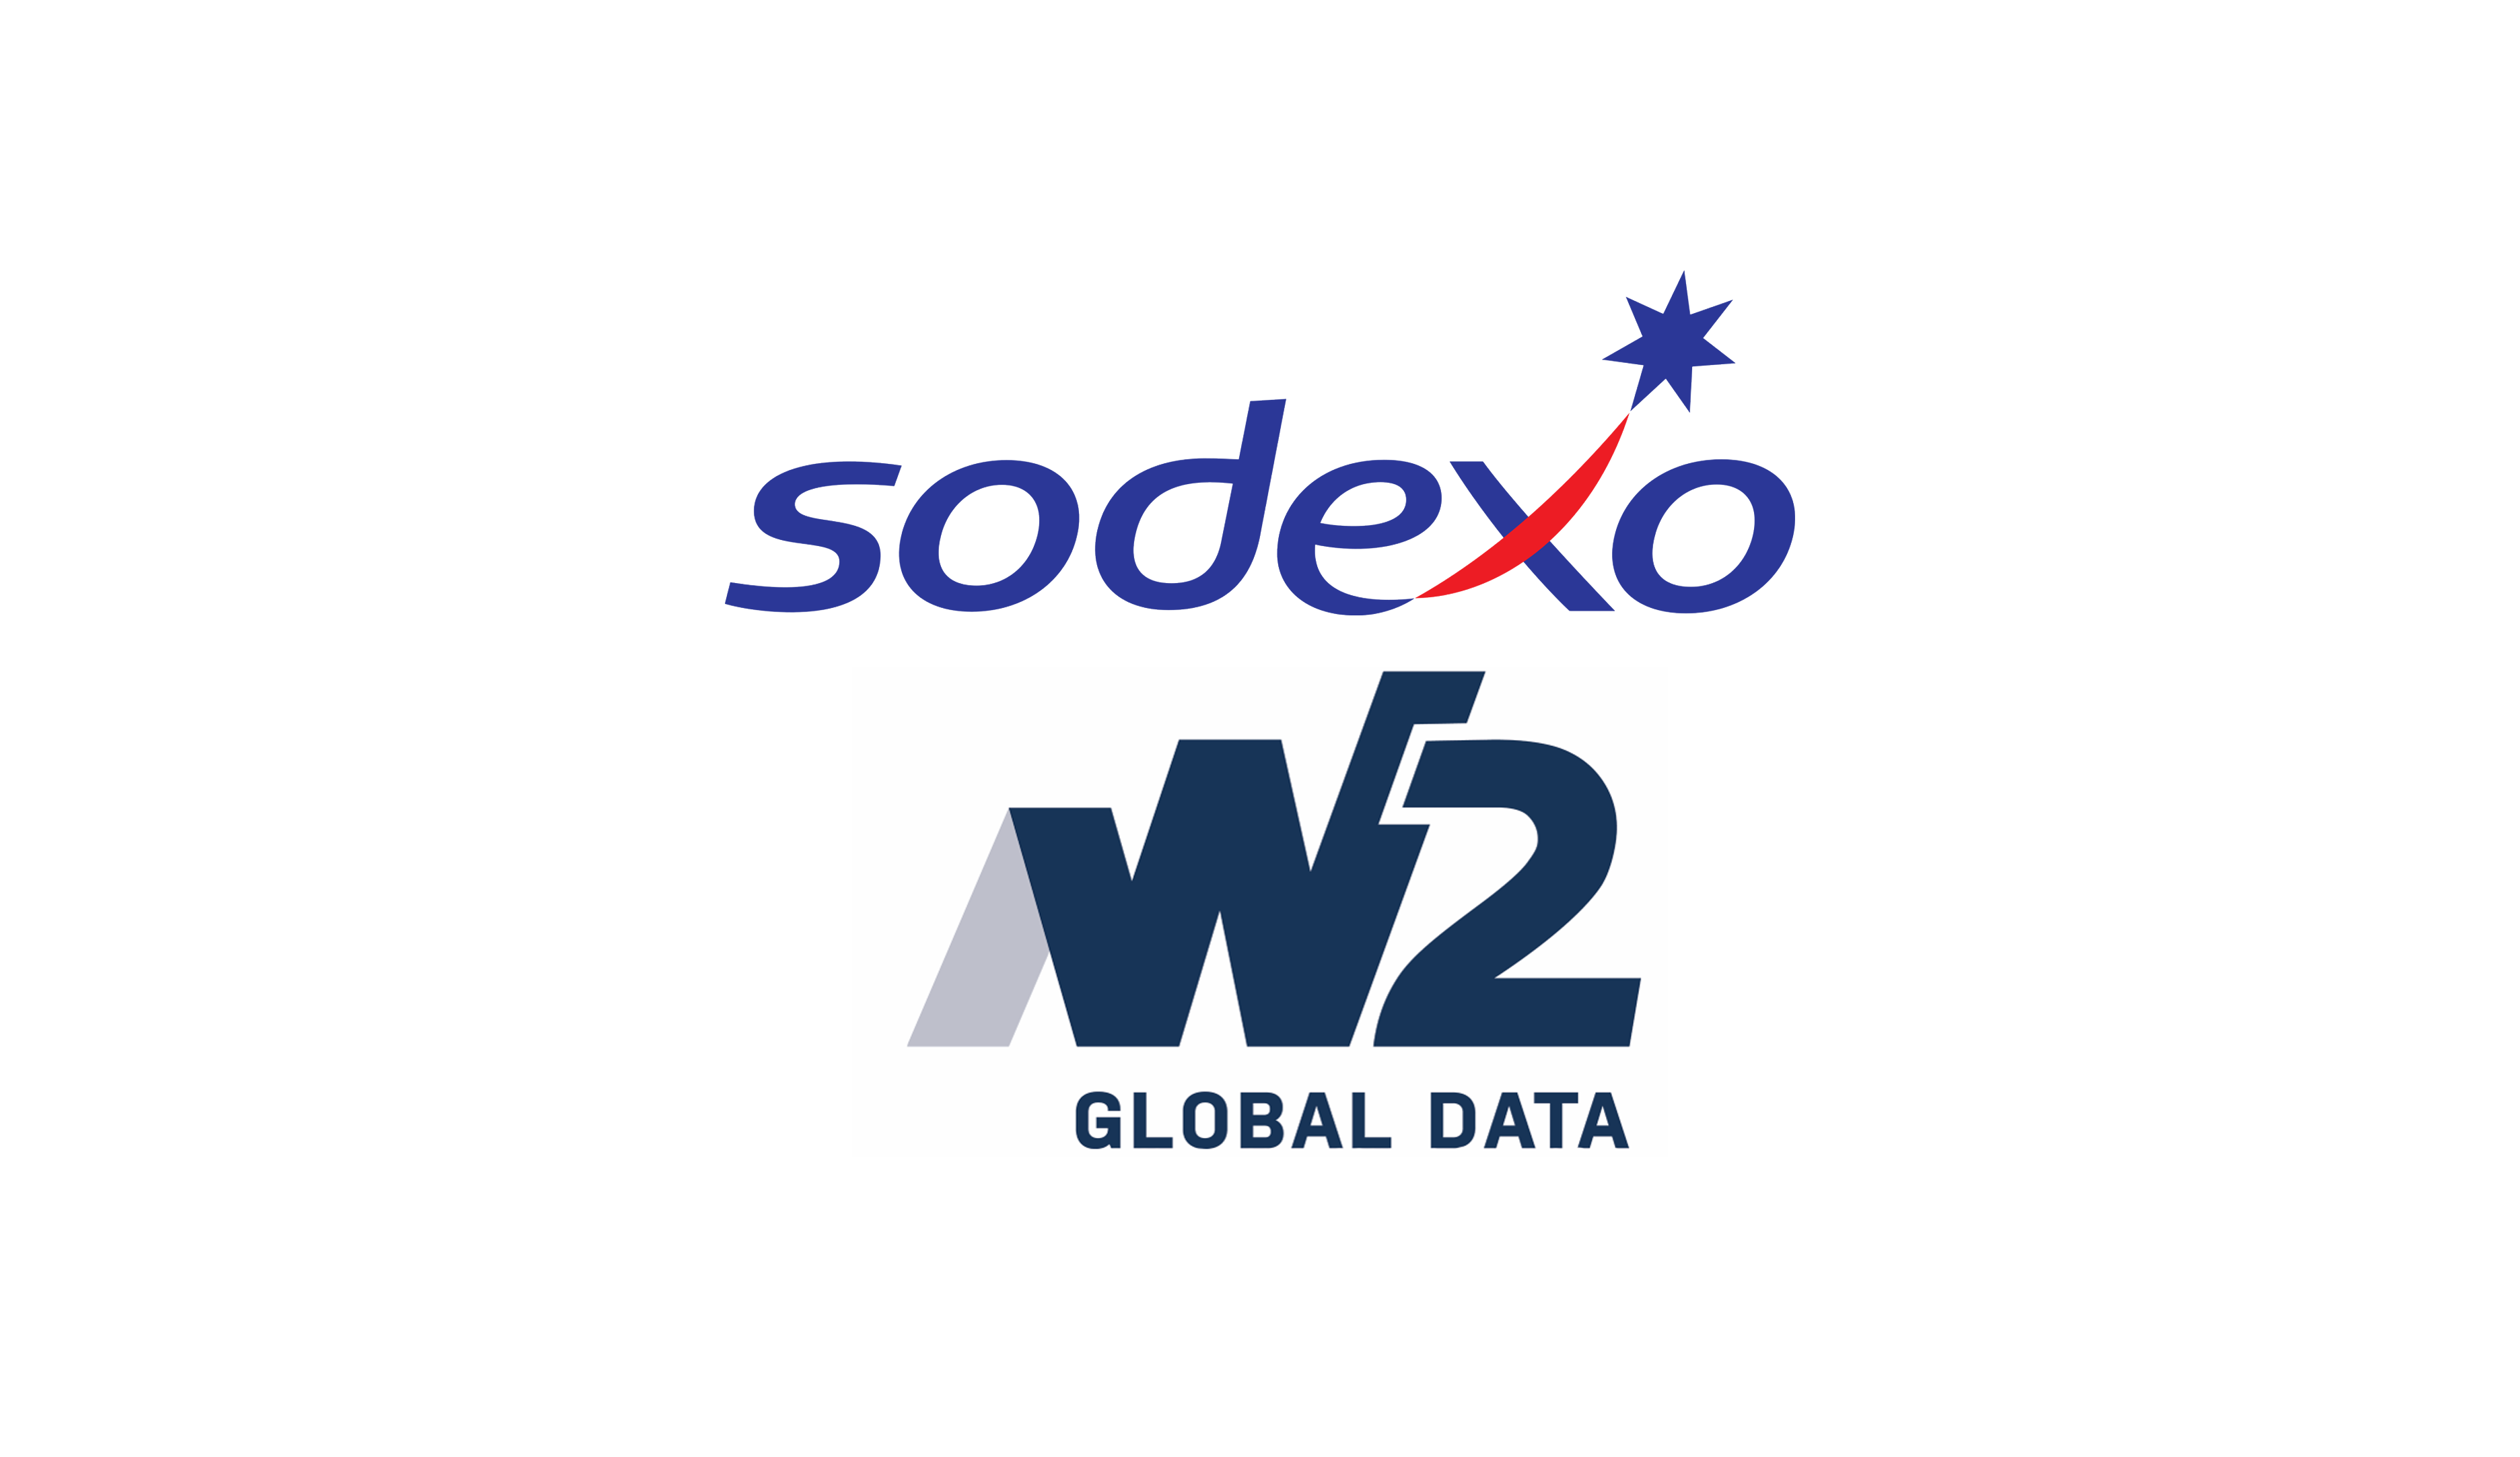 W2 Announces Partnership with Sodexo Engage to Boost Data Integrity for Onboarding